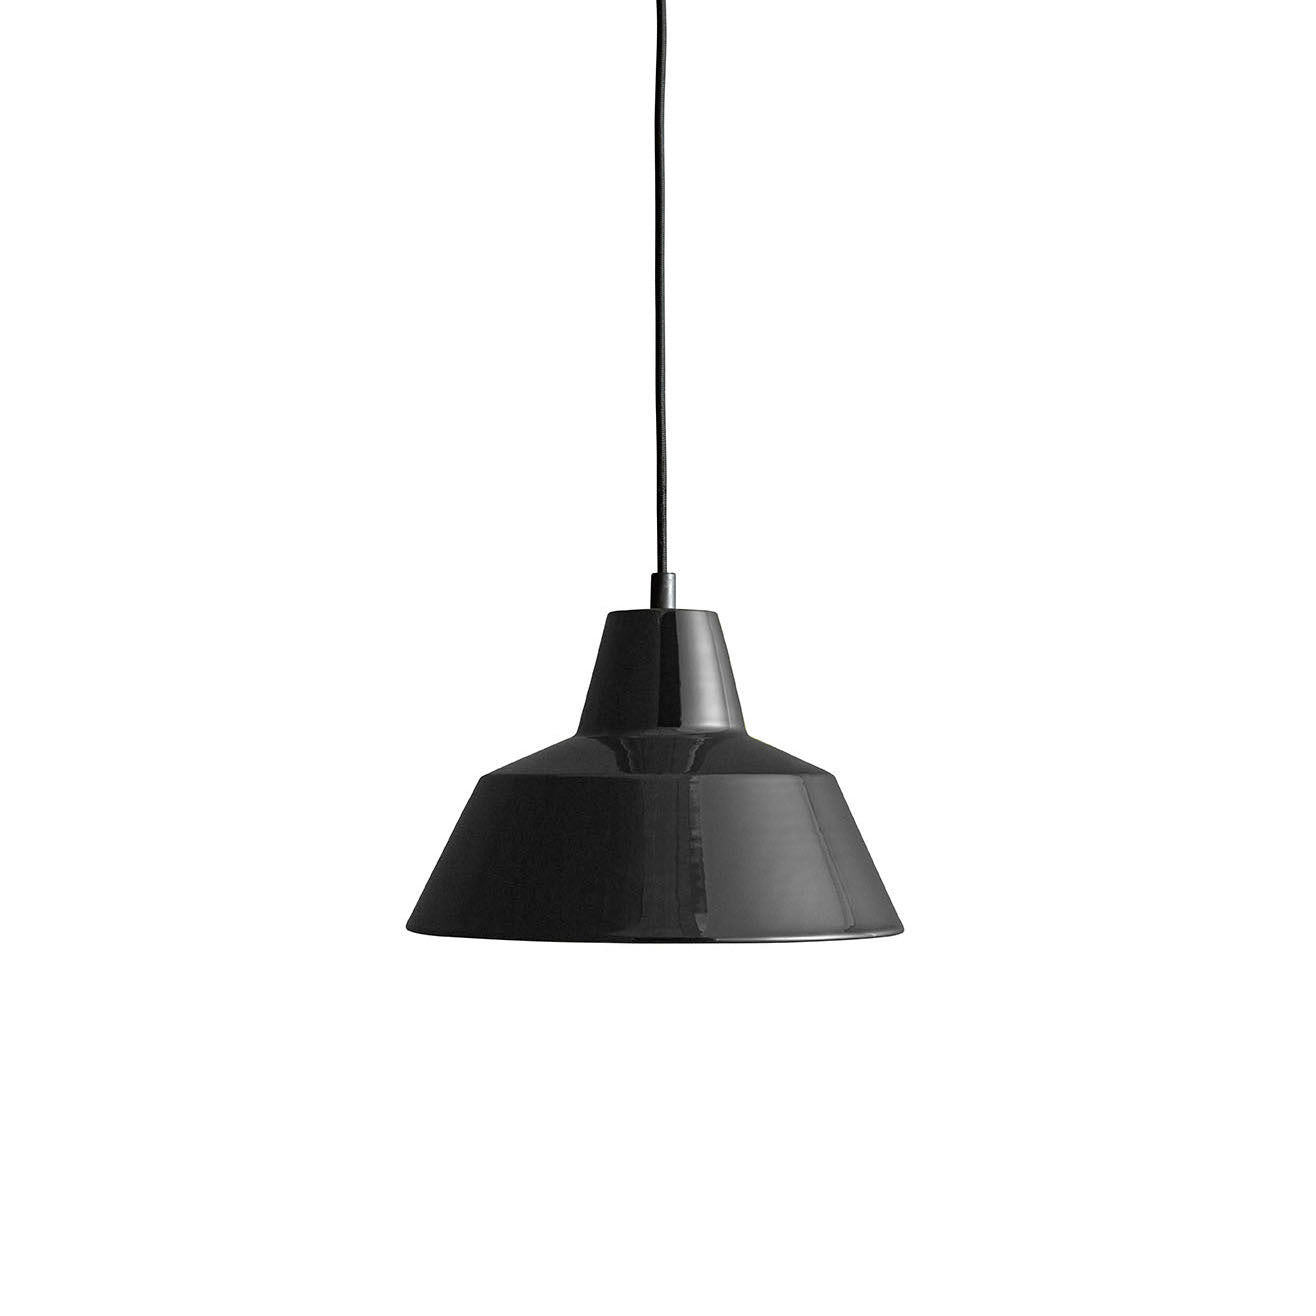 Workshop Pendant Lamp W2: Shiny Black